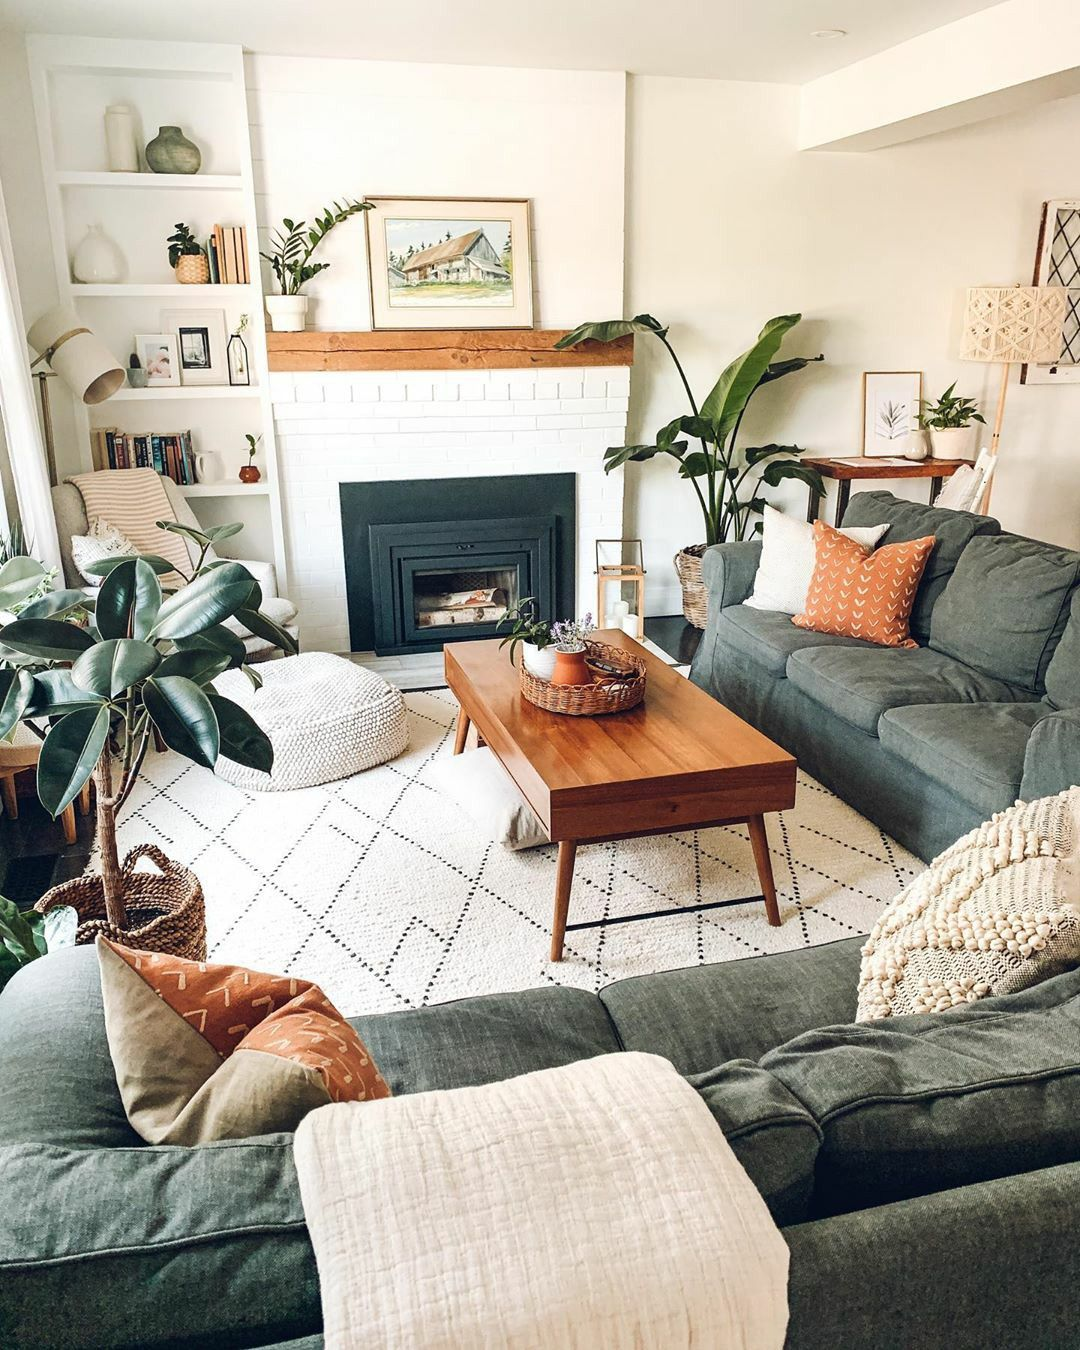 Pin By Malynn Andrick On Dream Digs Living Room Decor Apartment Living Room Designs Home Decor